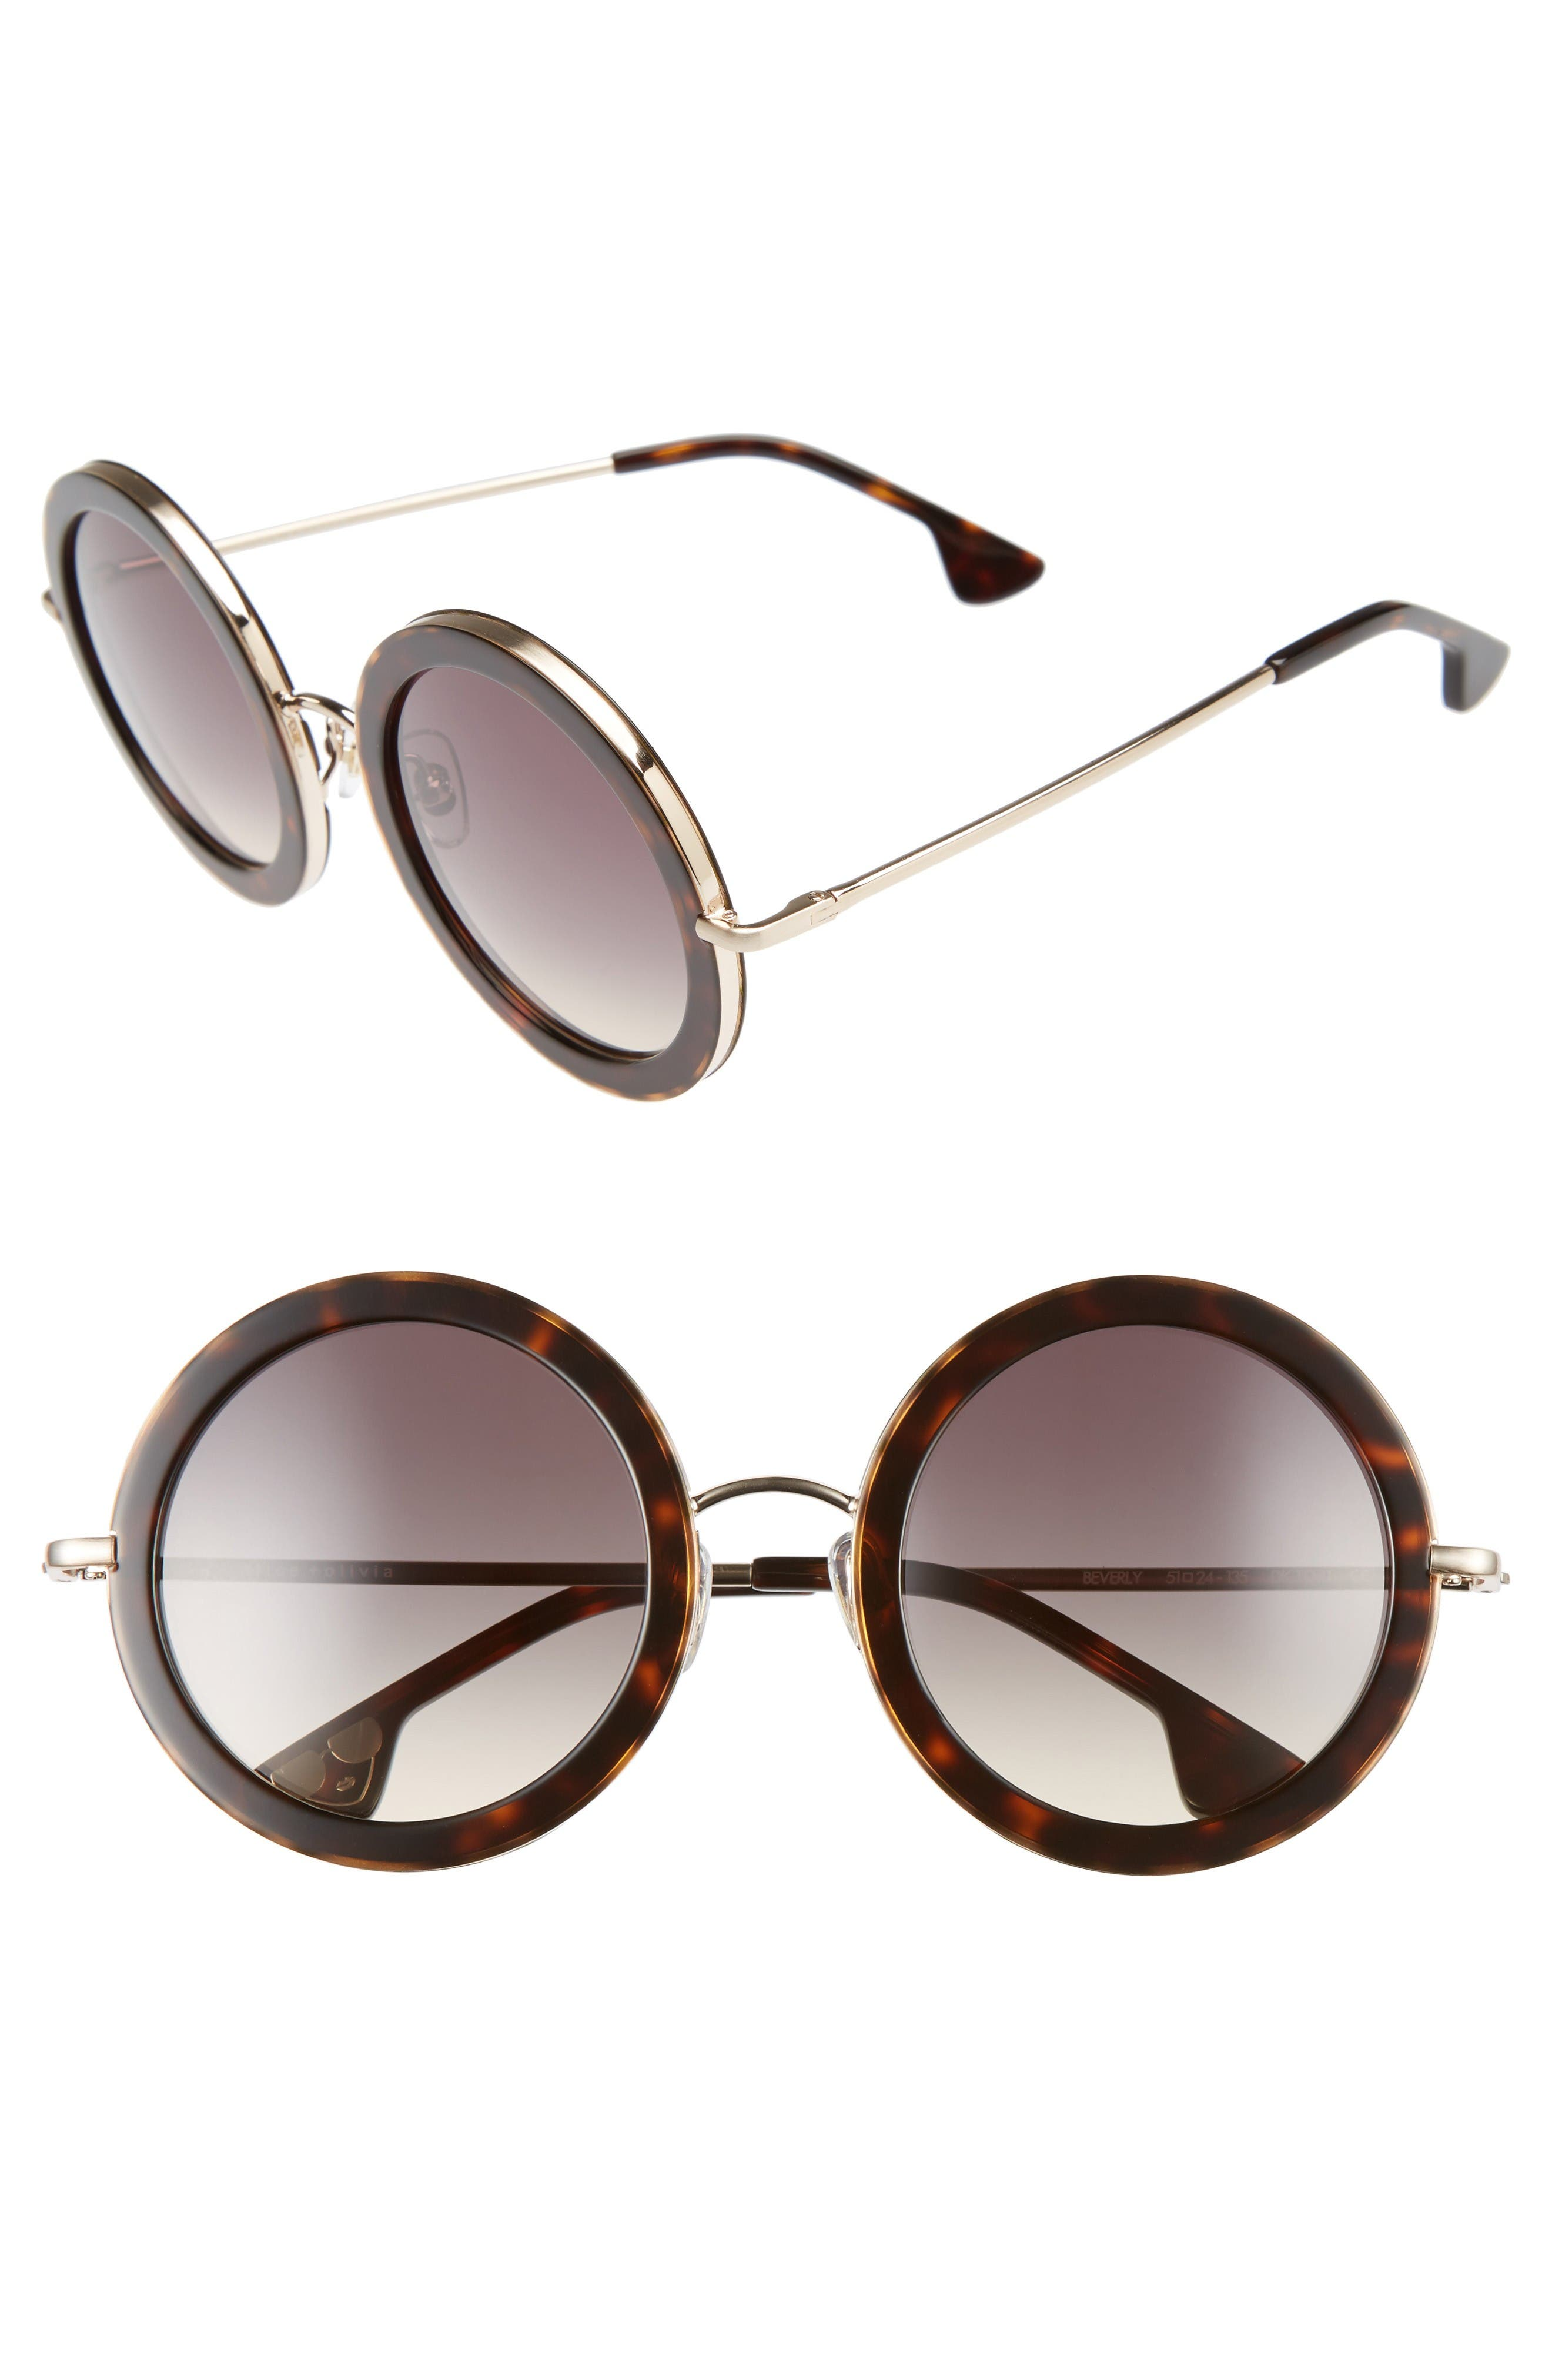 Alice + Olivia Beverly 51mm Special Fit Round Sunglasses